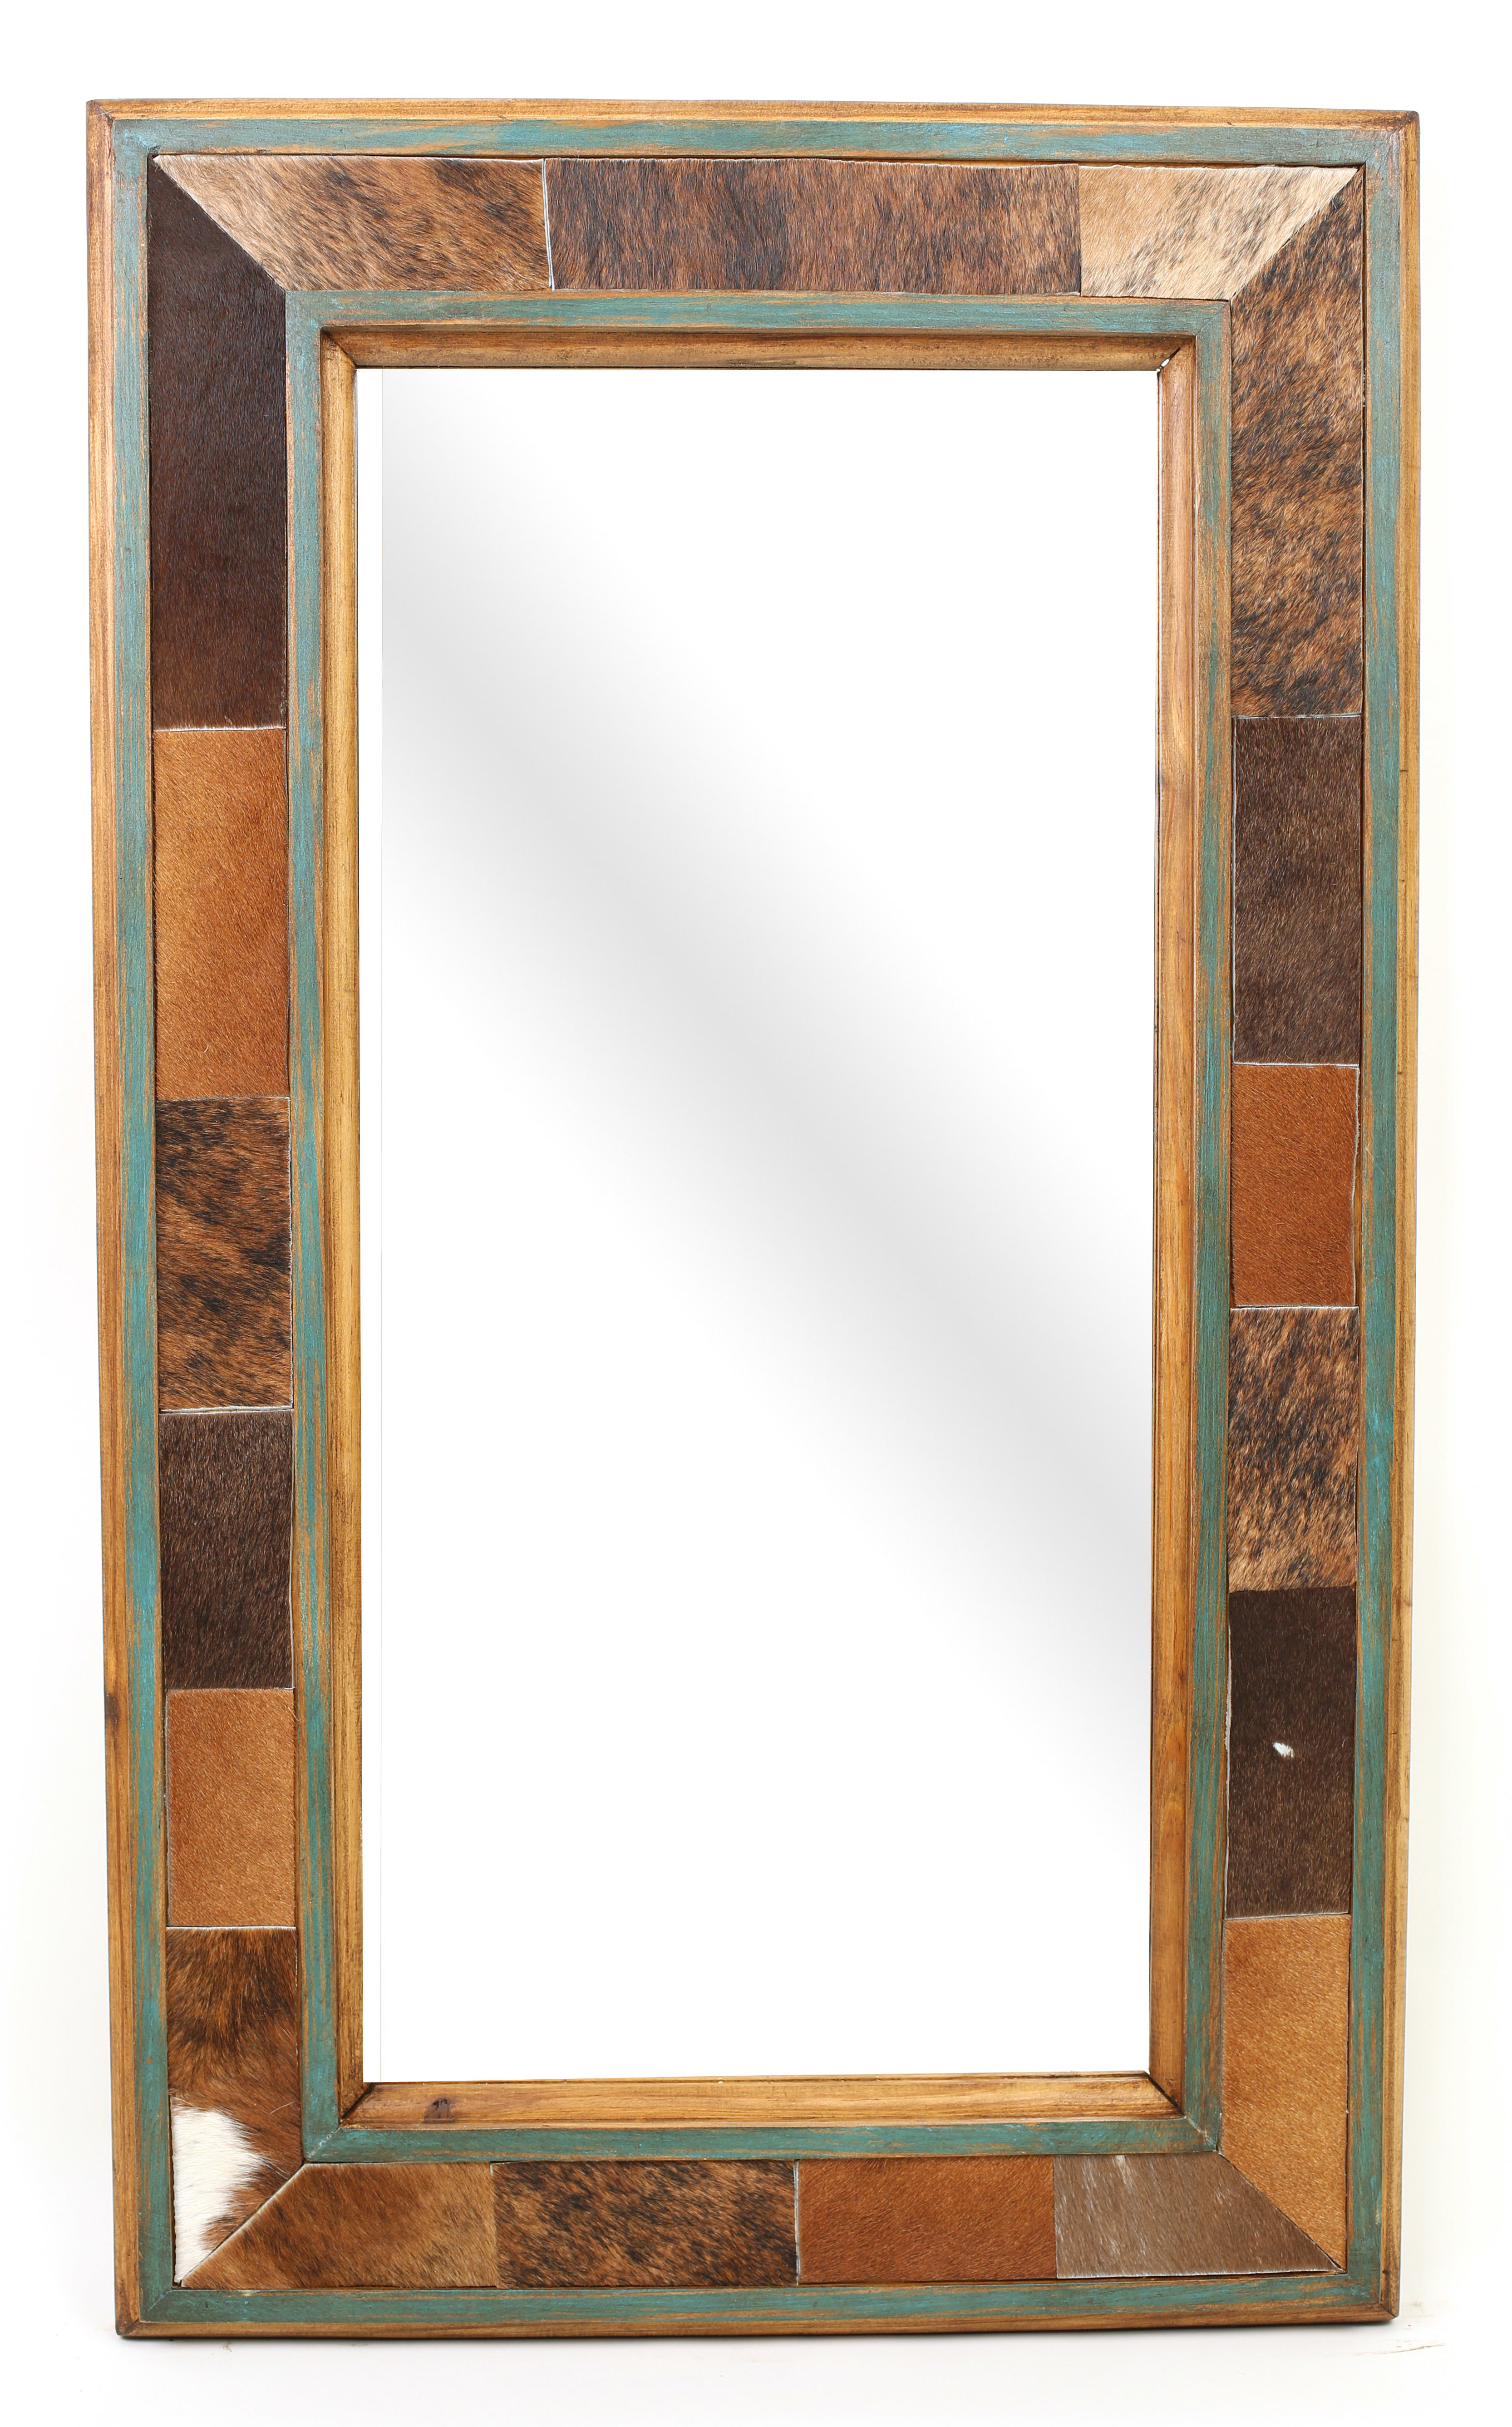 Rustic Pine Mirror | Wayfair Inside Longwood Rustic Beveled Accent Mirrors (Image 12 of 20)